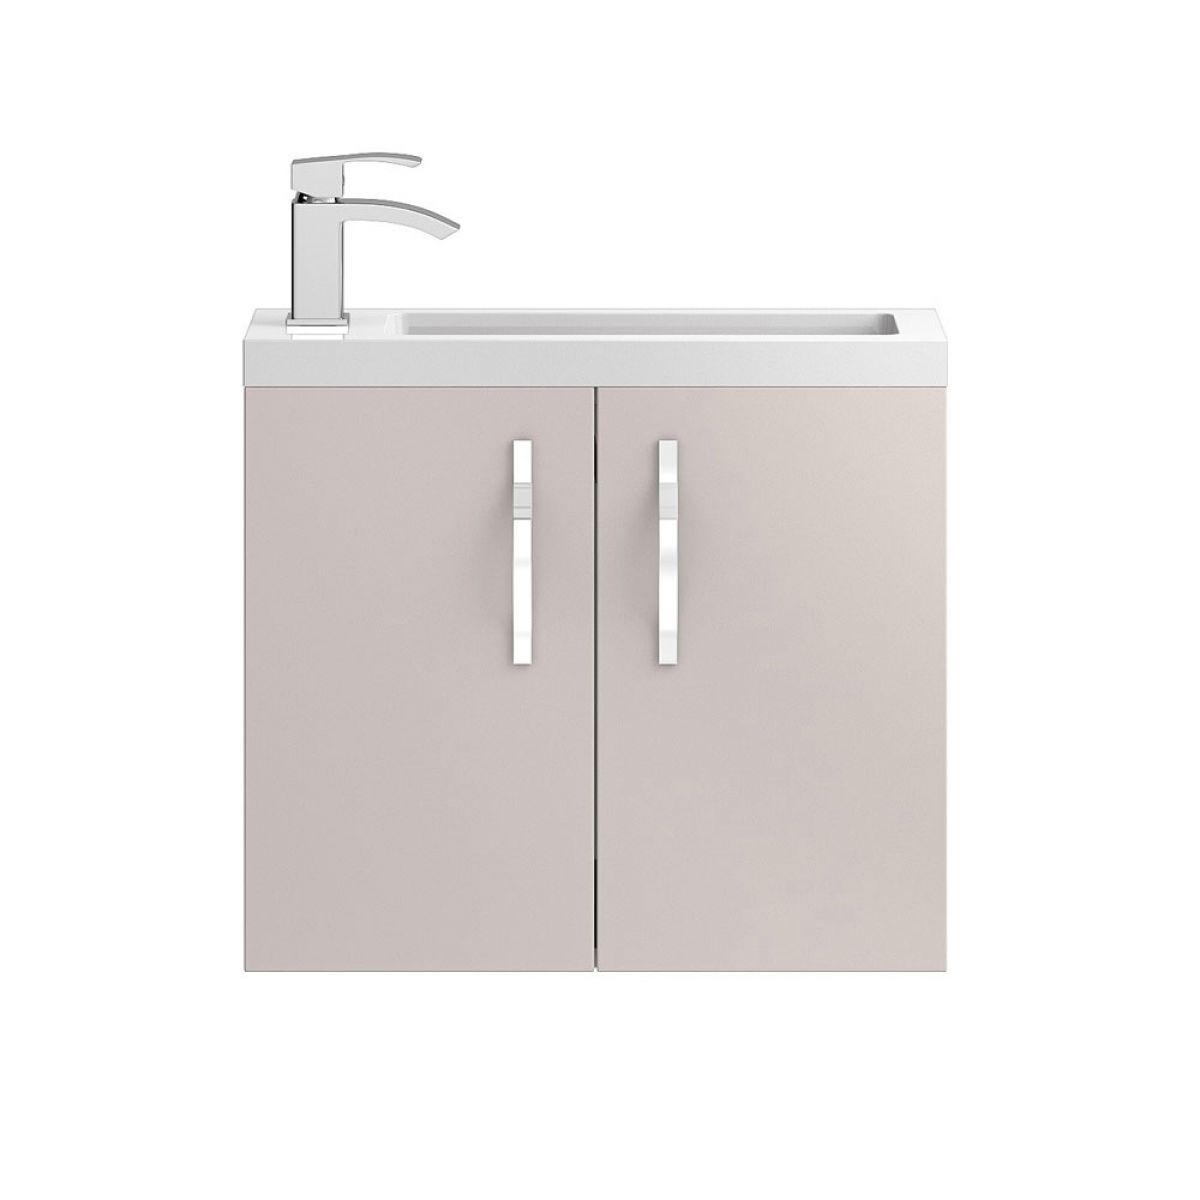 Hudson Reed Apollo Compact Gloss Cashmere Wall Hung Vanity Unit 600mm